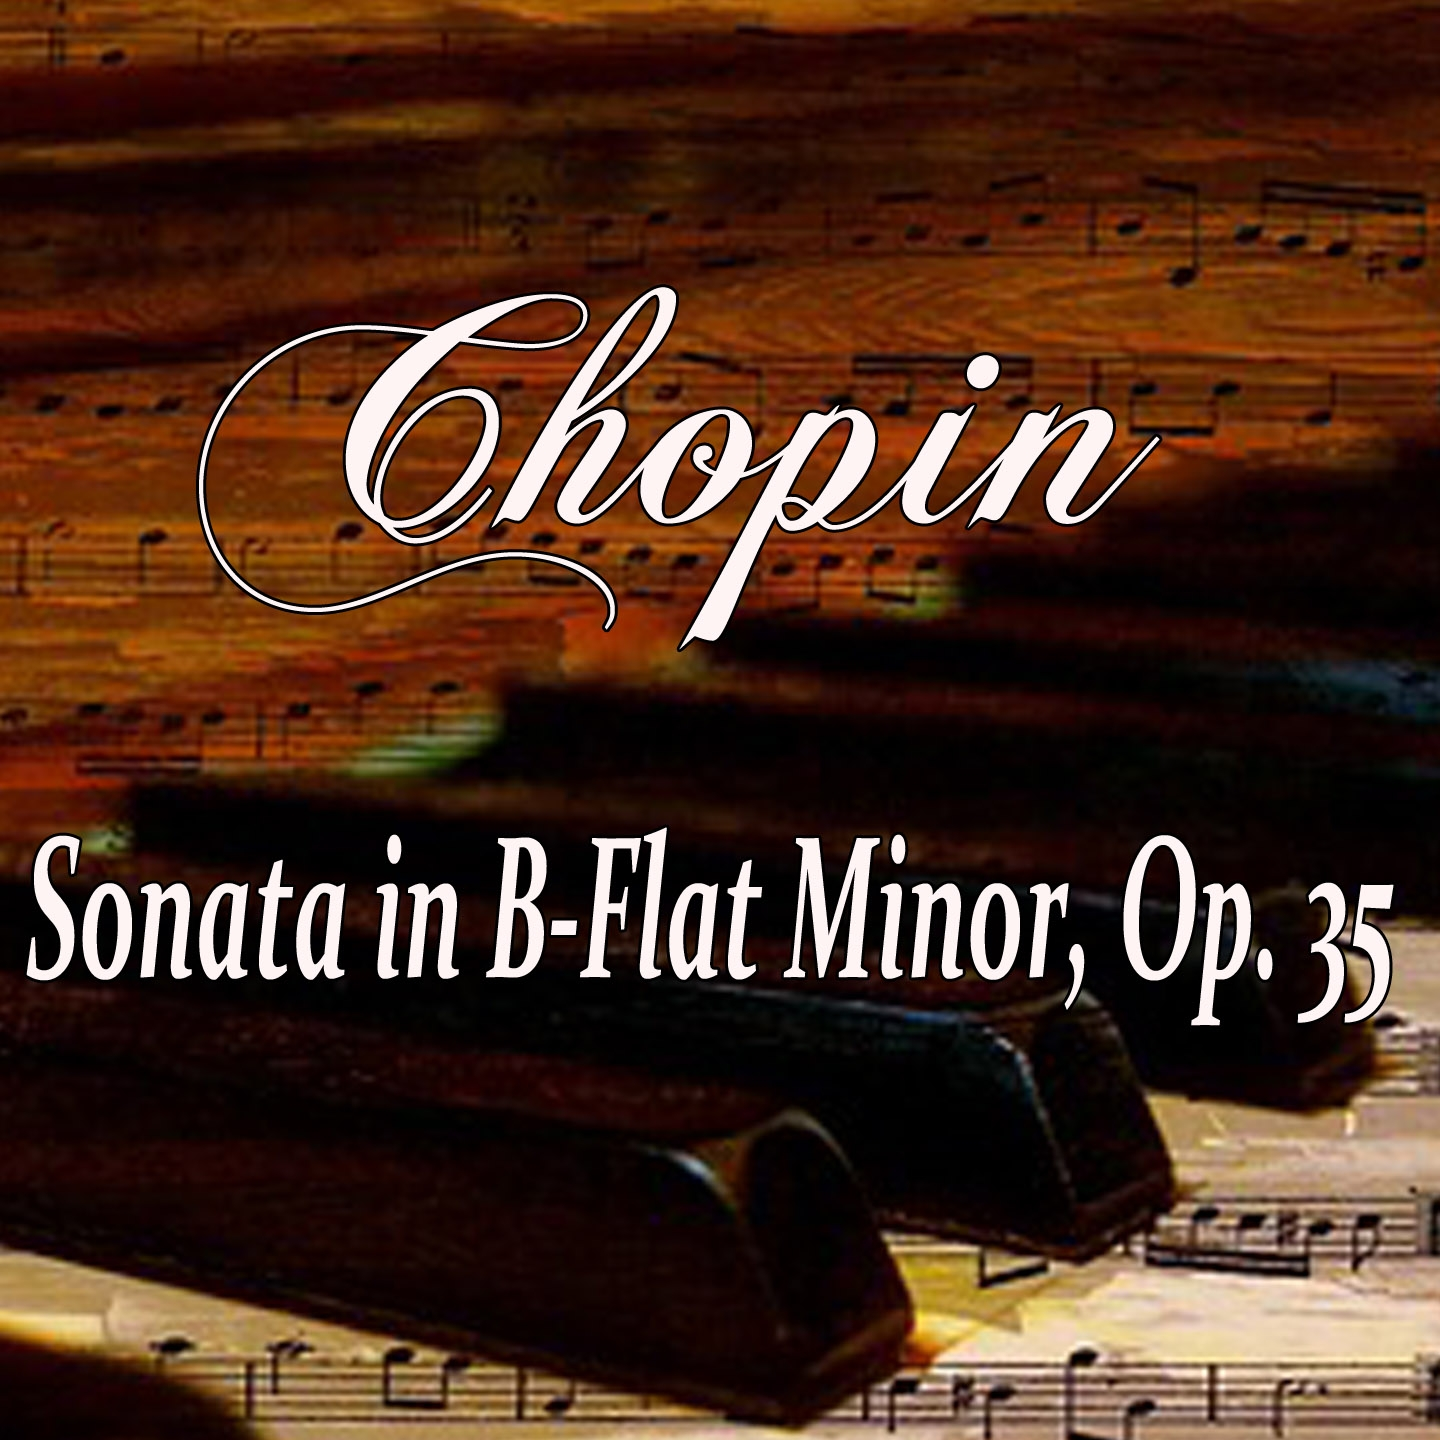 Chopin: Sonata in B-Flat Minor, Op. 35